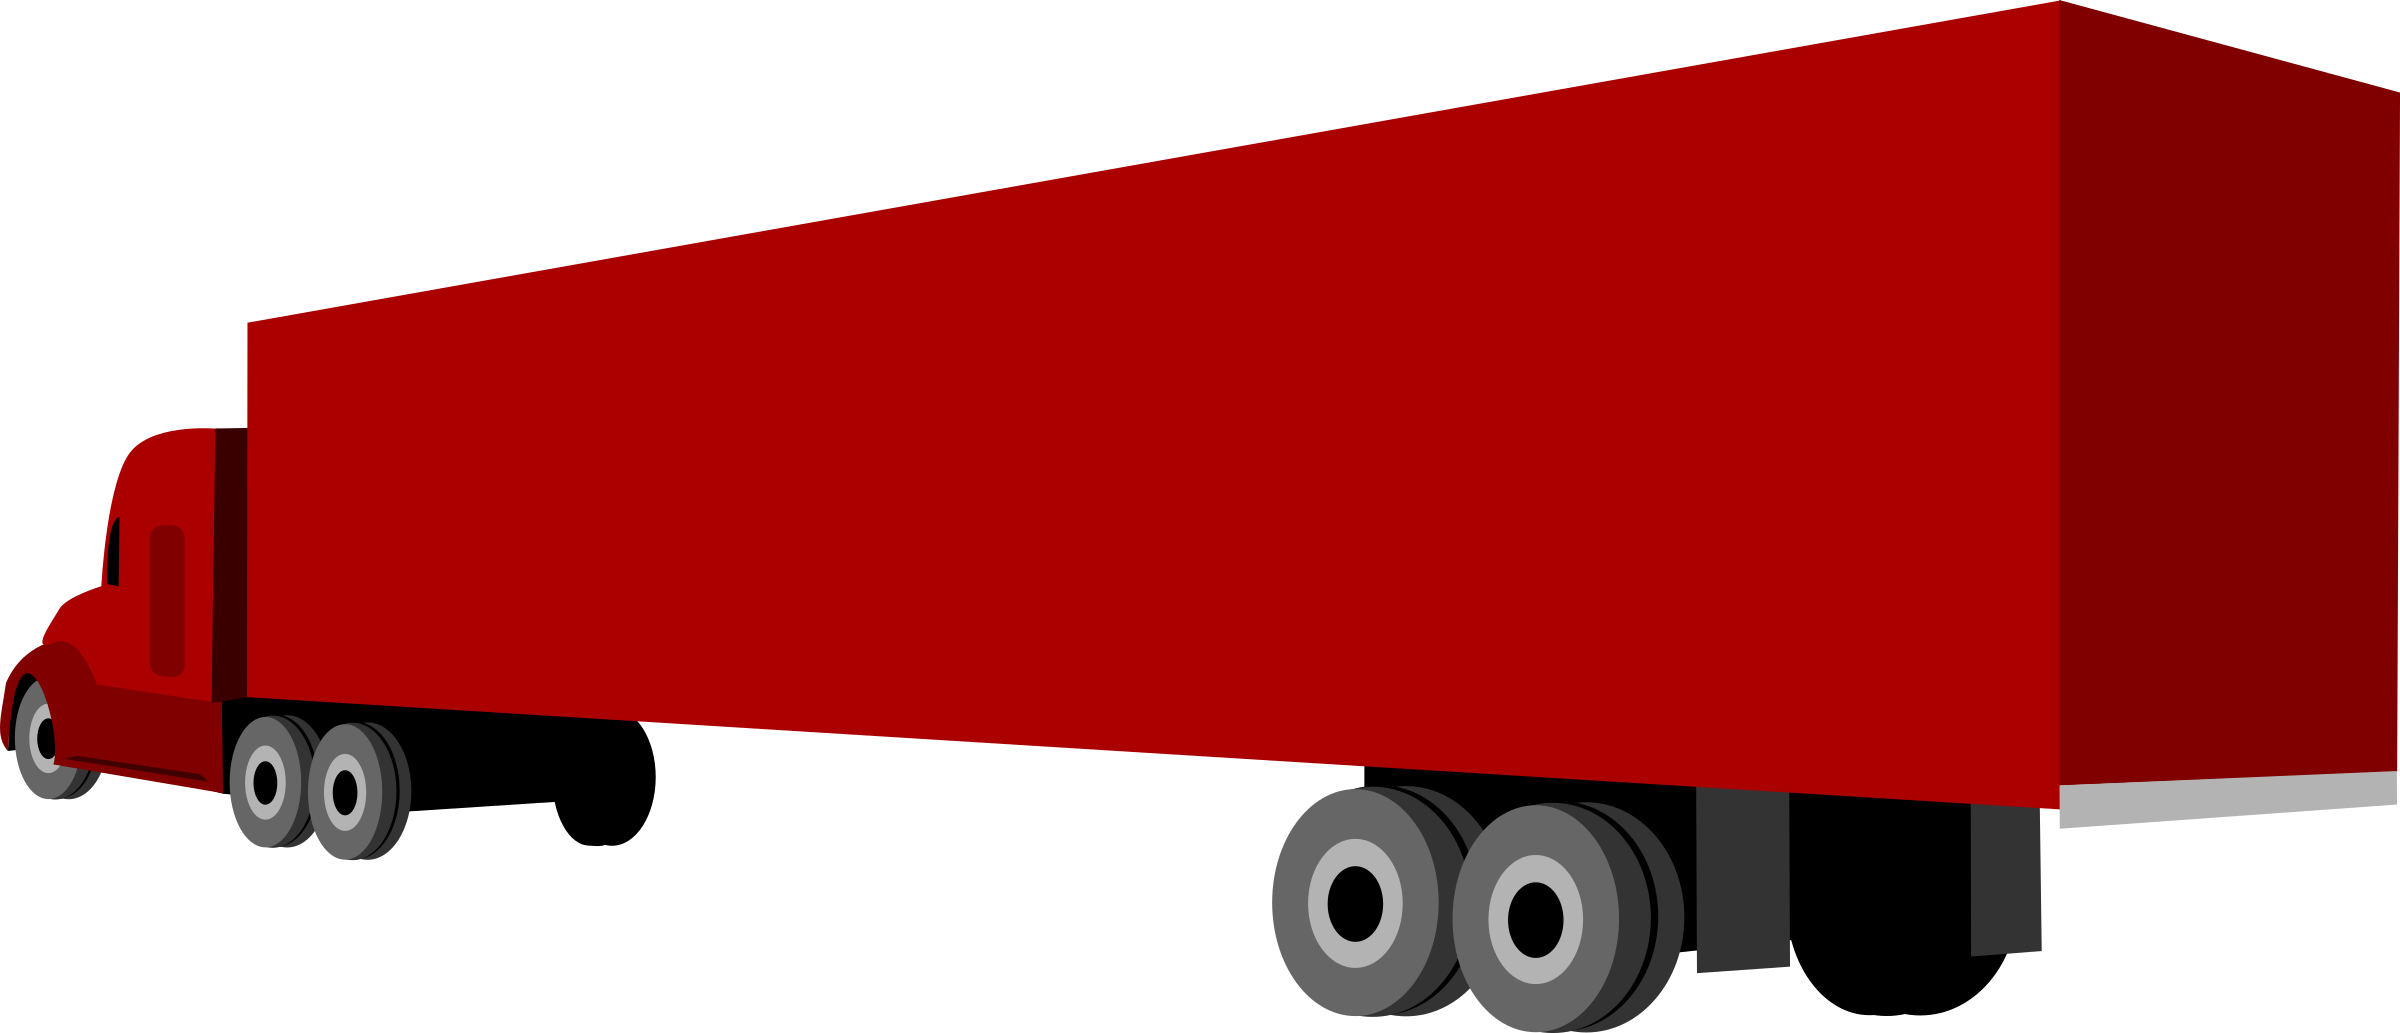 Wagon clipart tractor. Trailer group truck and